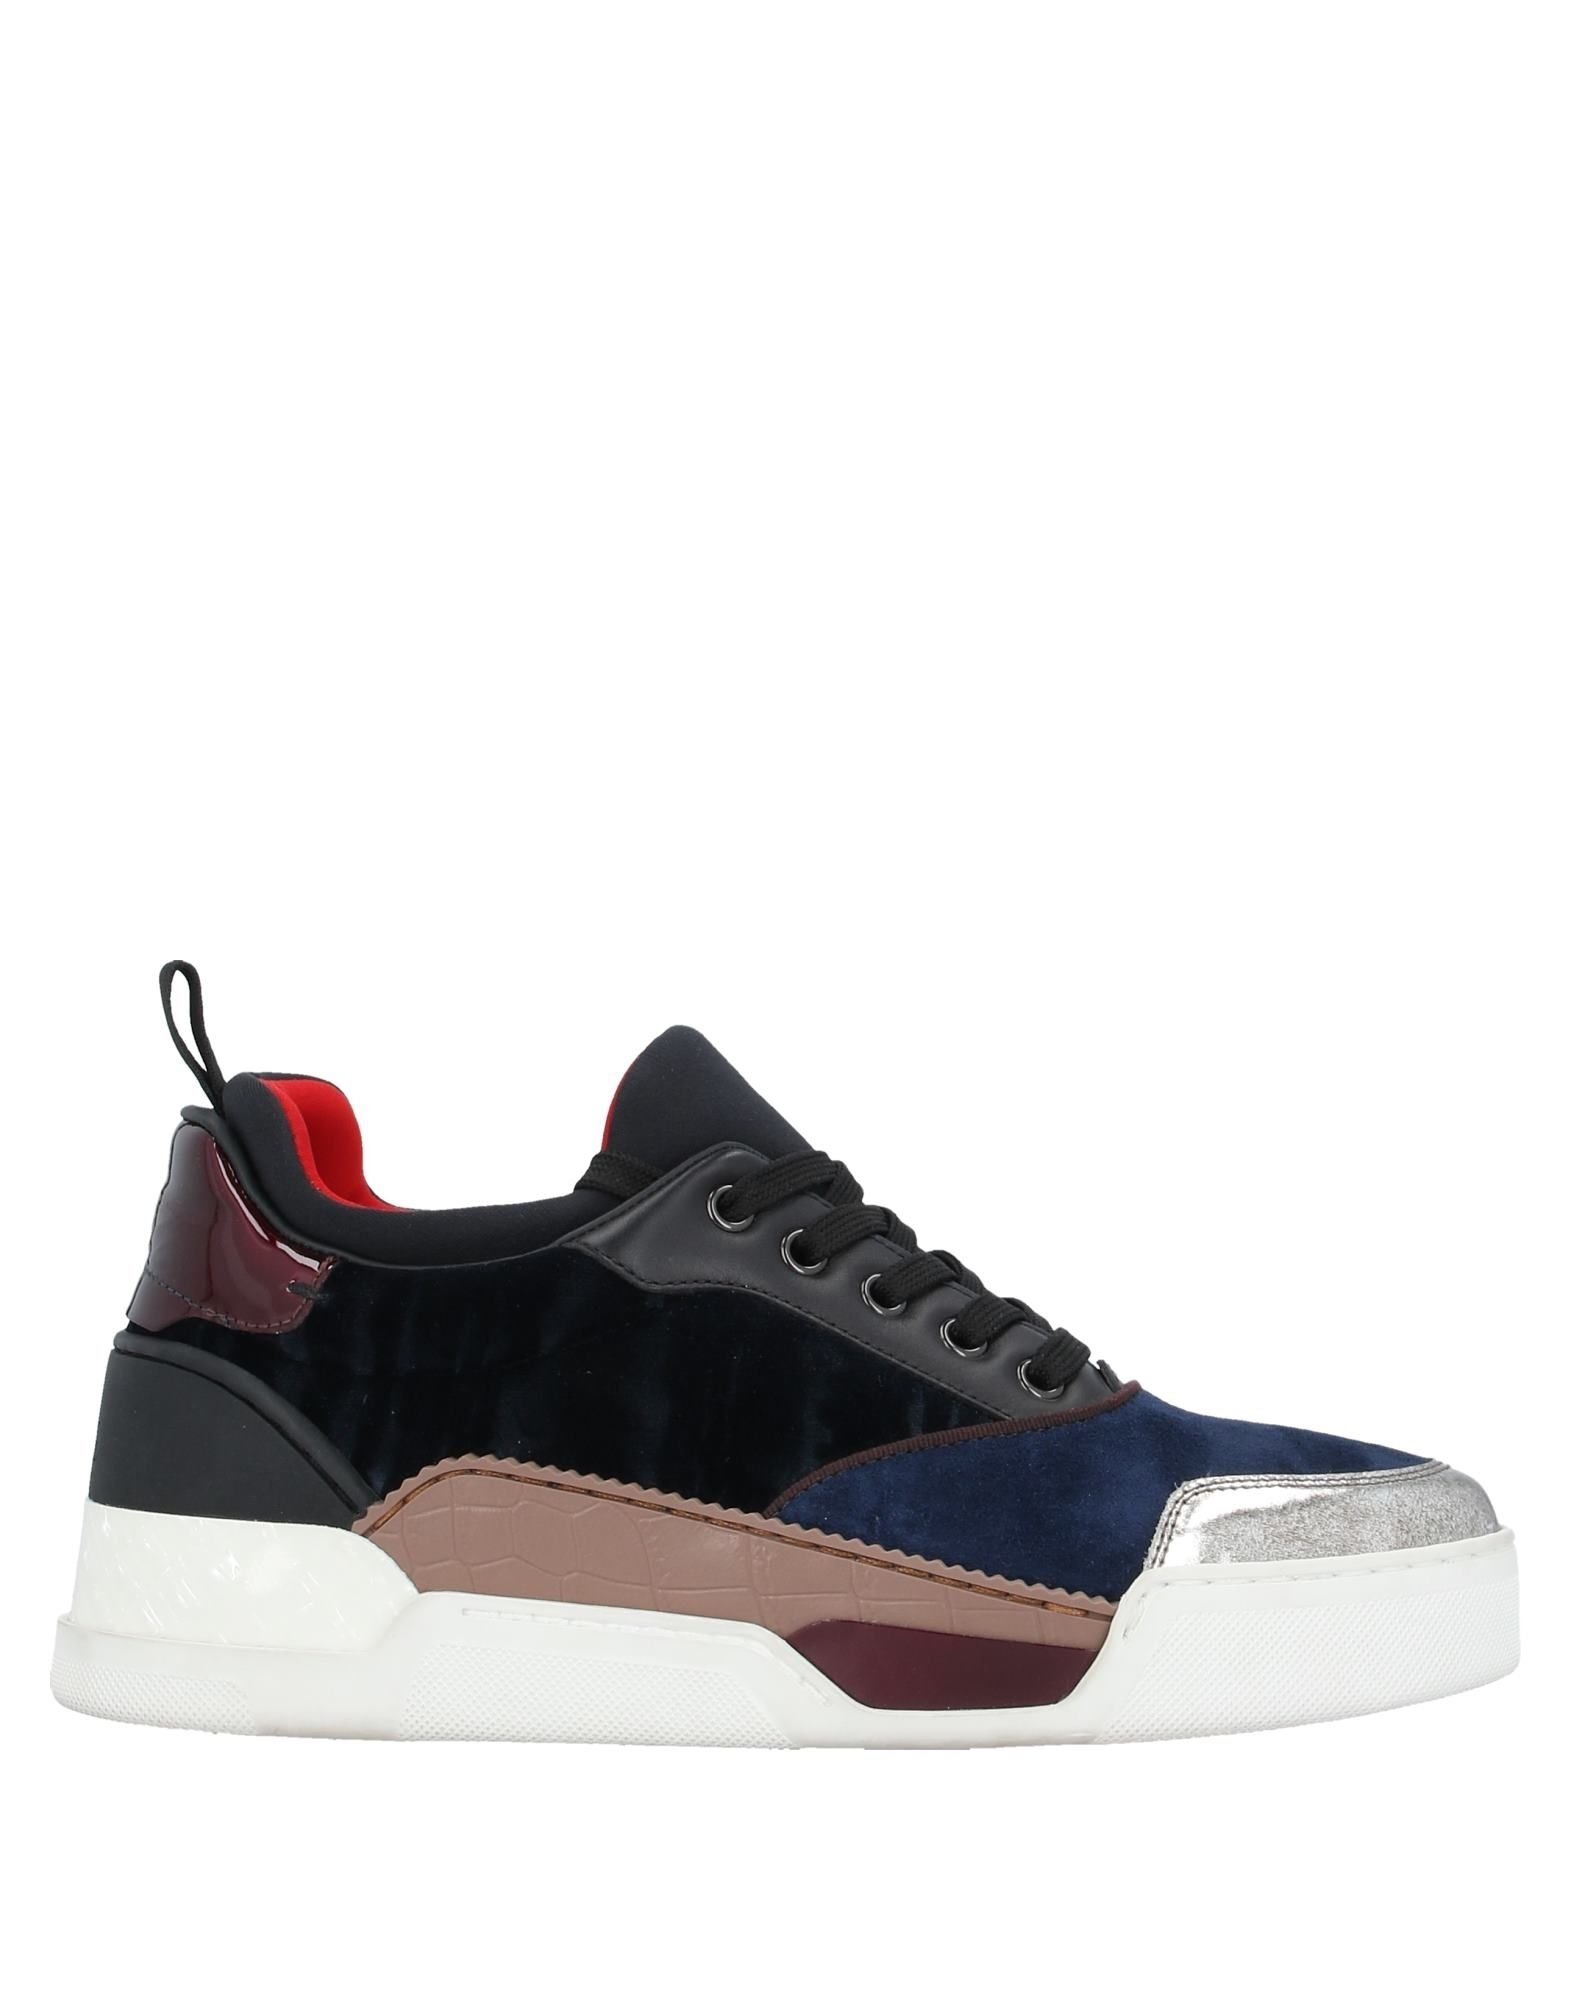 CHRISTIAN LOUBOUTIN Sneakers. laminated effect, velvet, no appliqués, multicolor pattern, laces, round toeline, flat, leather lining, rubber sole, contains non-textile parts of animal origin. Soft Leather, Textile fibers